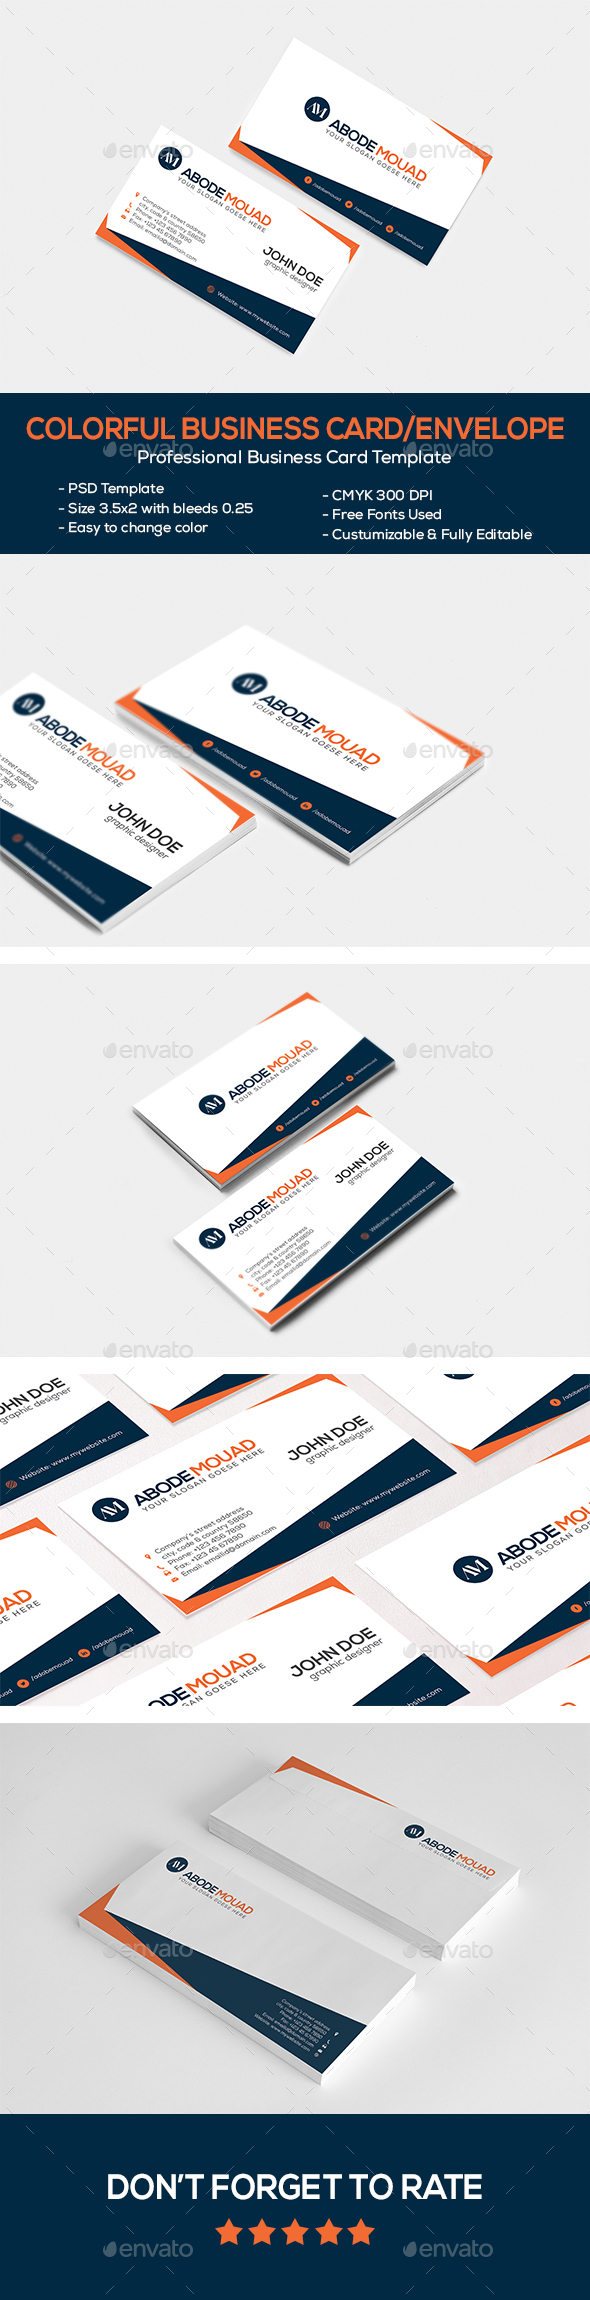 Colorful Business Card & Envelope Pack - Business Cards Print Templates